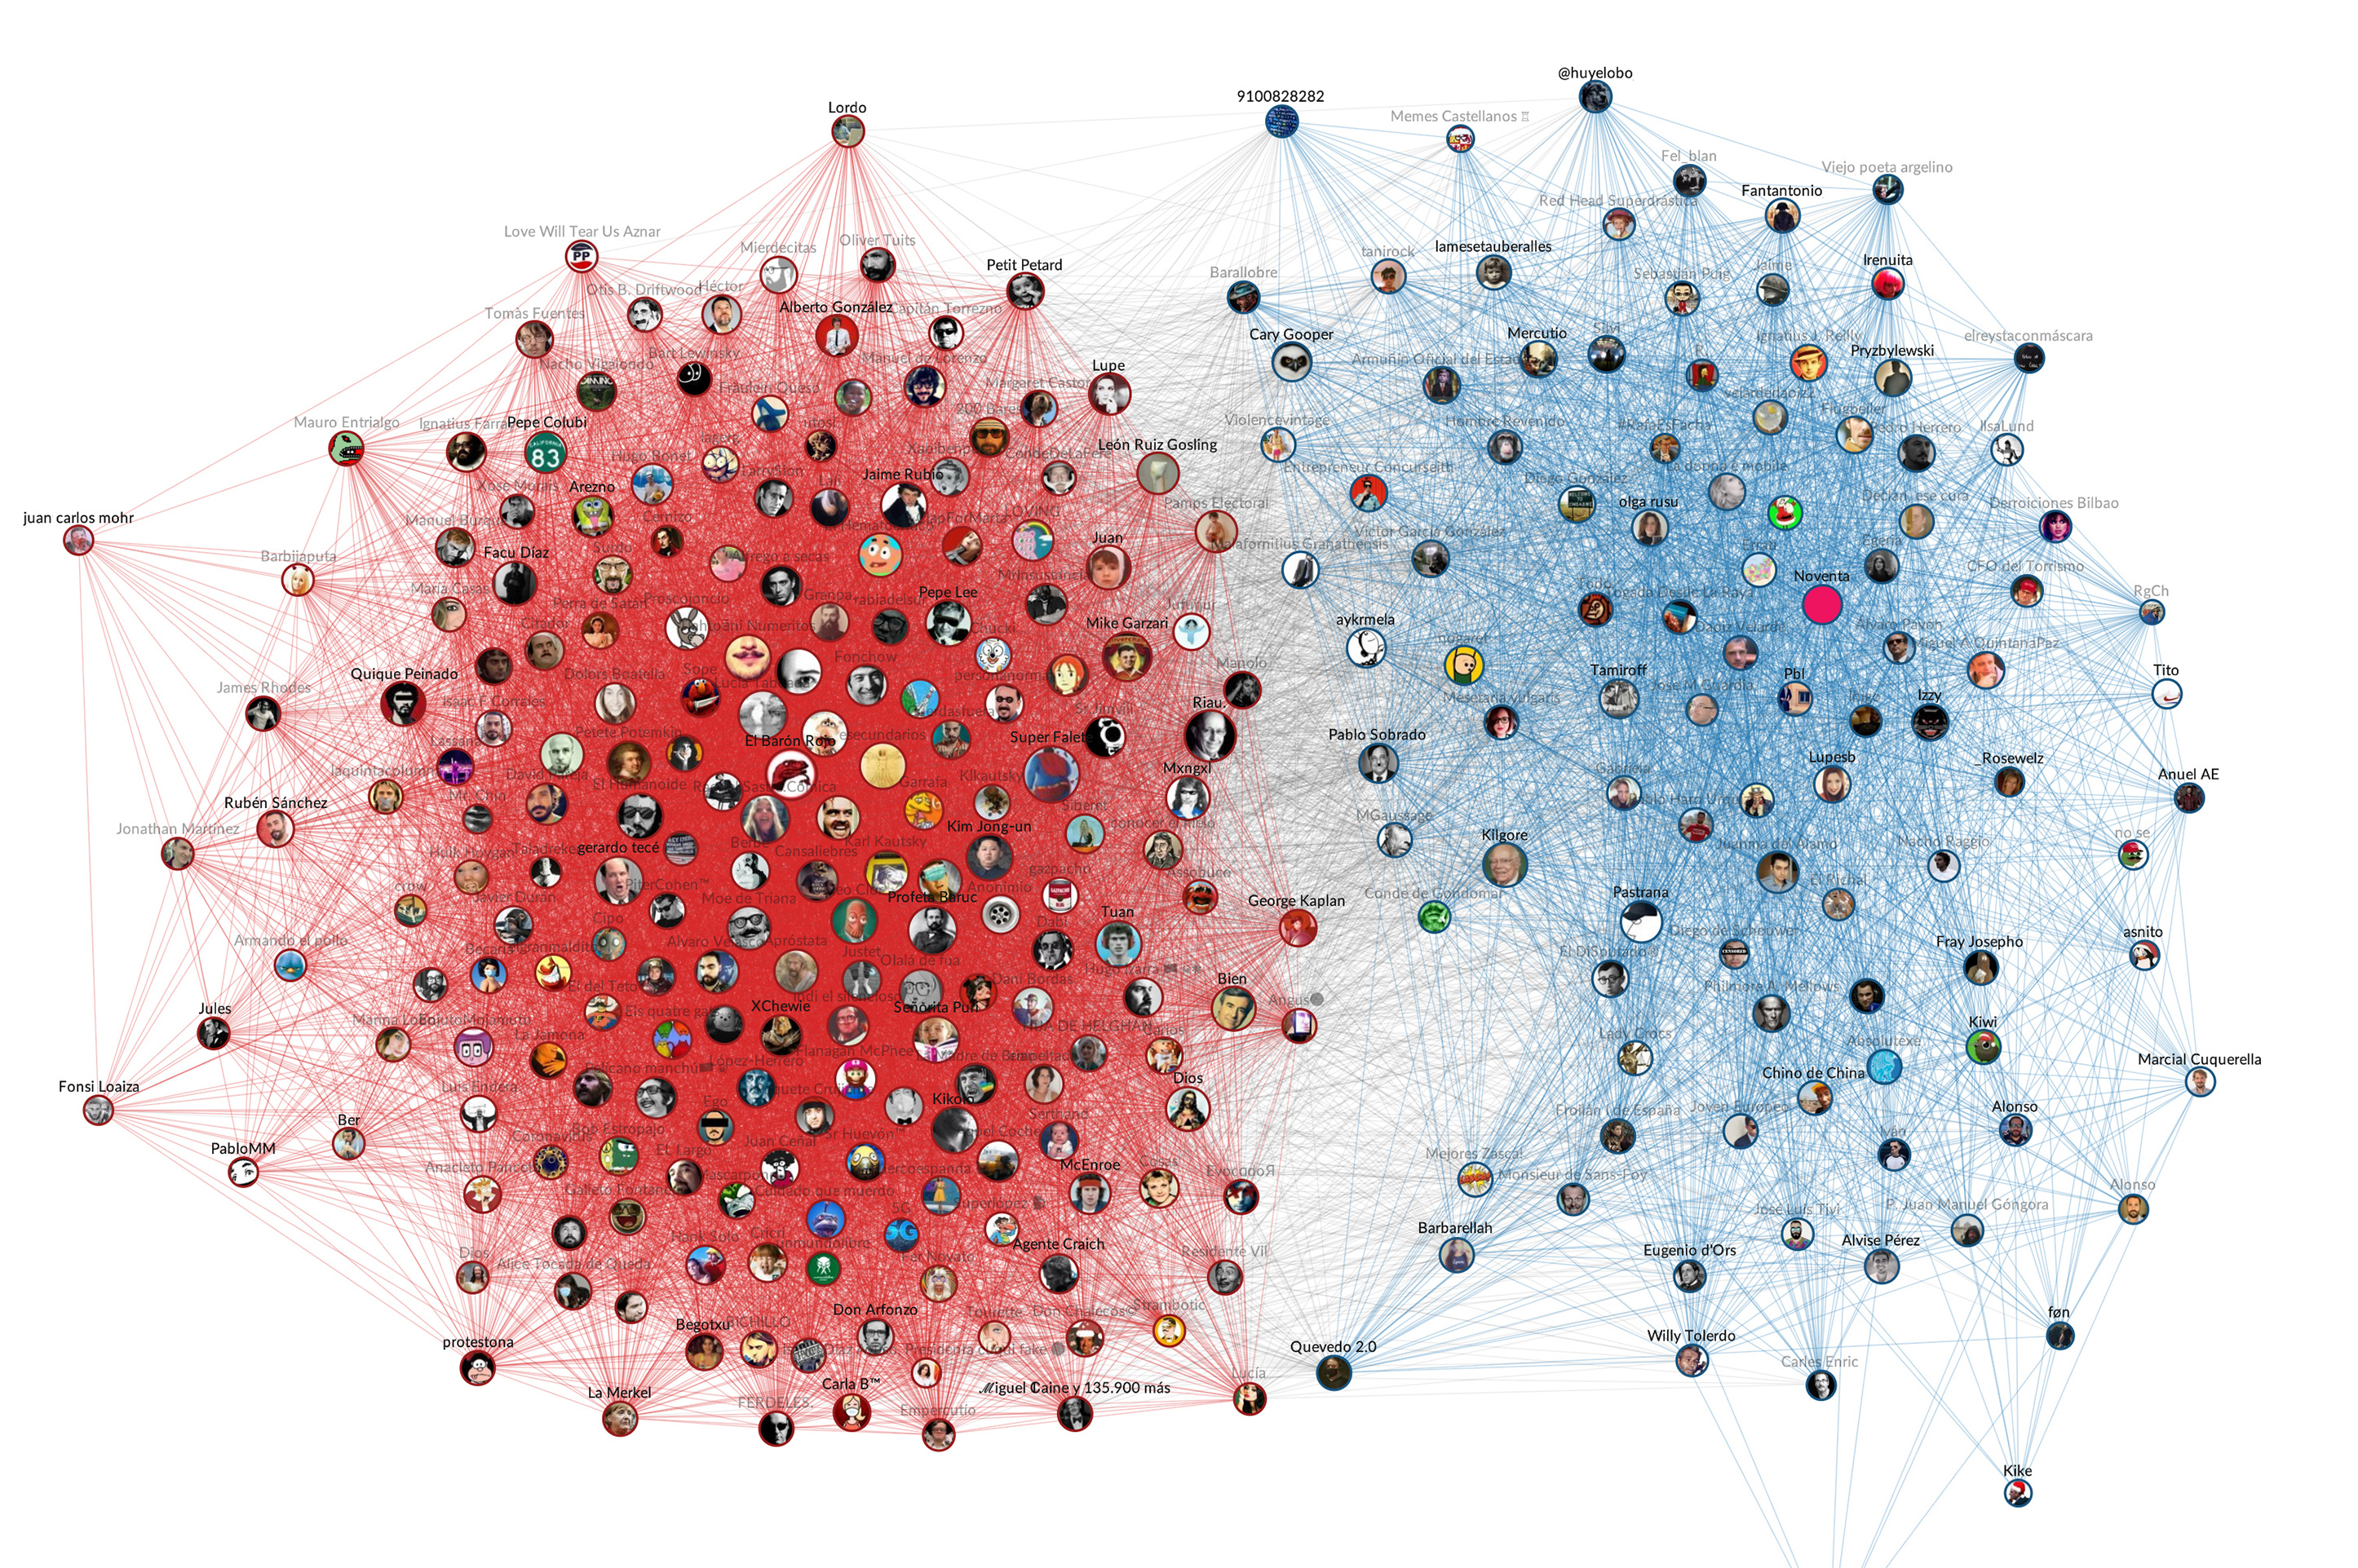 A network visualization showing the most influential Twitter users that usually write about politics and related topics.